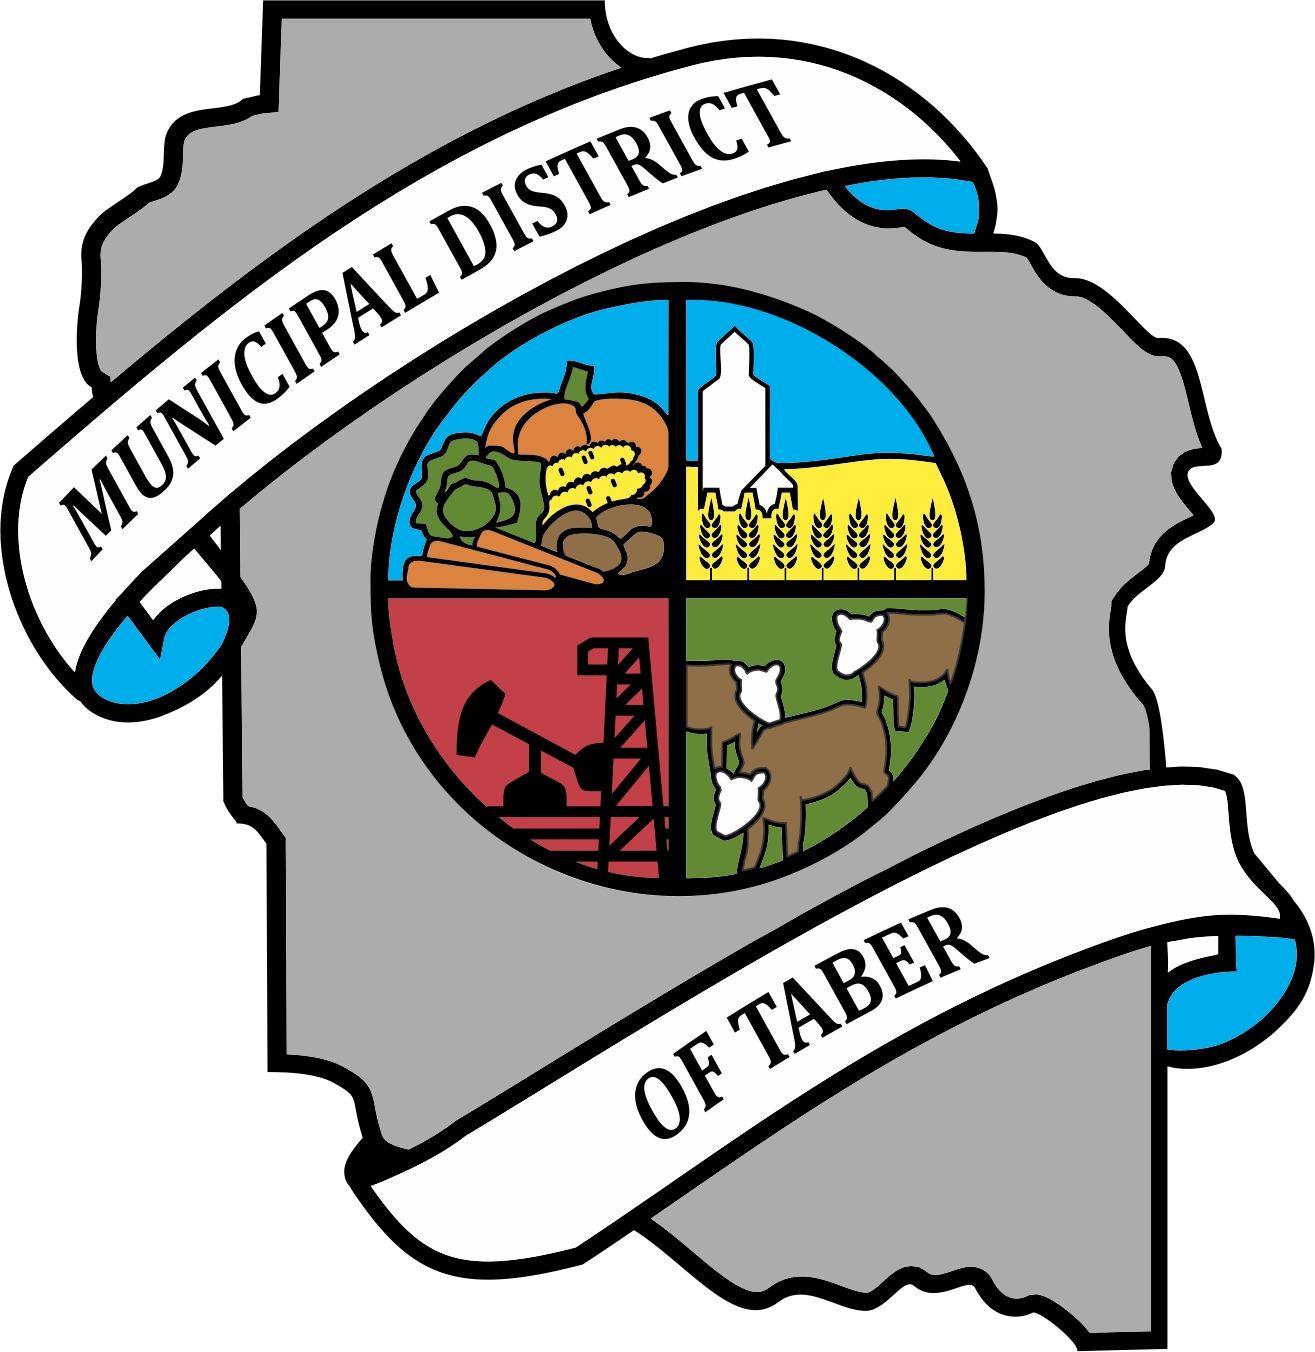 Copy of MD of Taber Logo.jpg